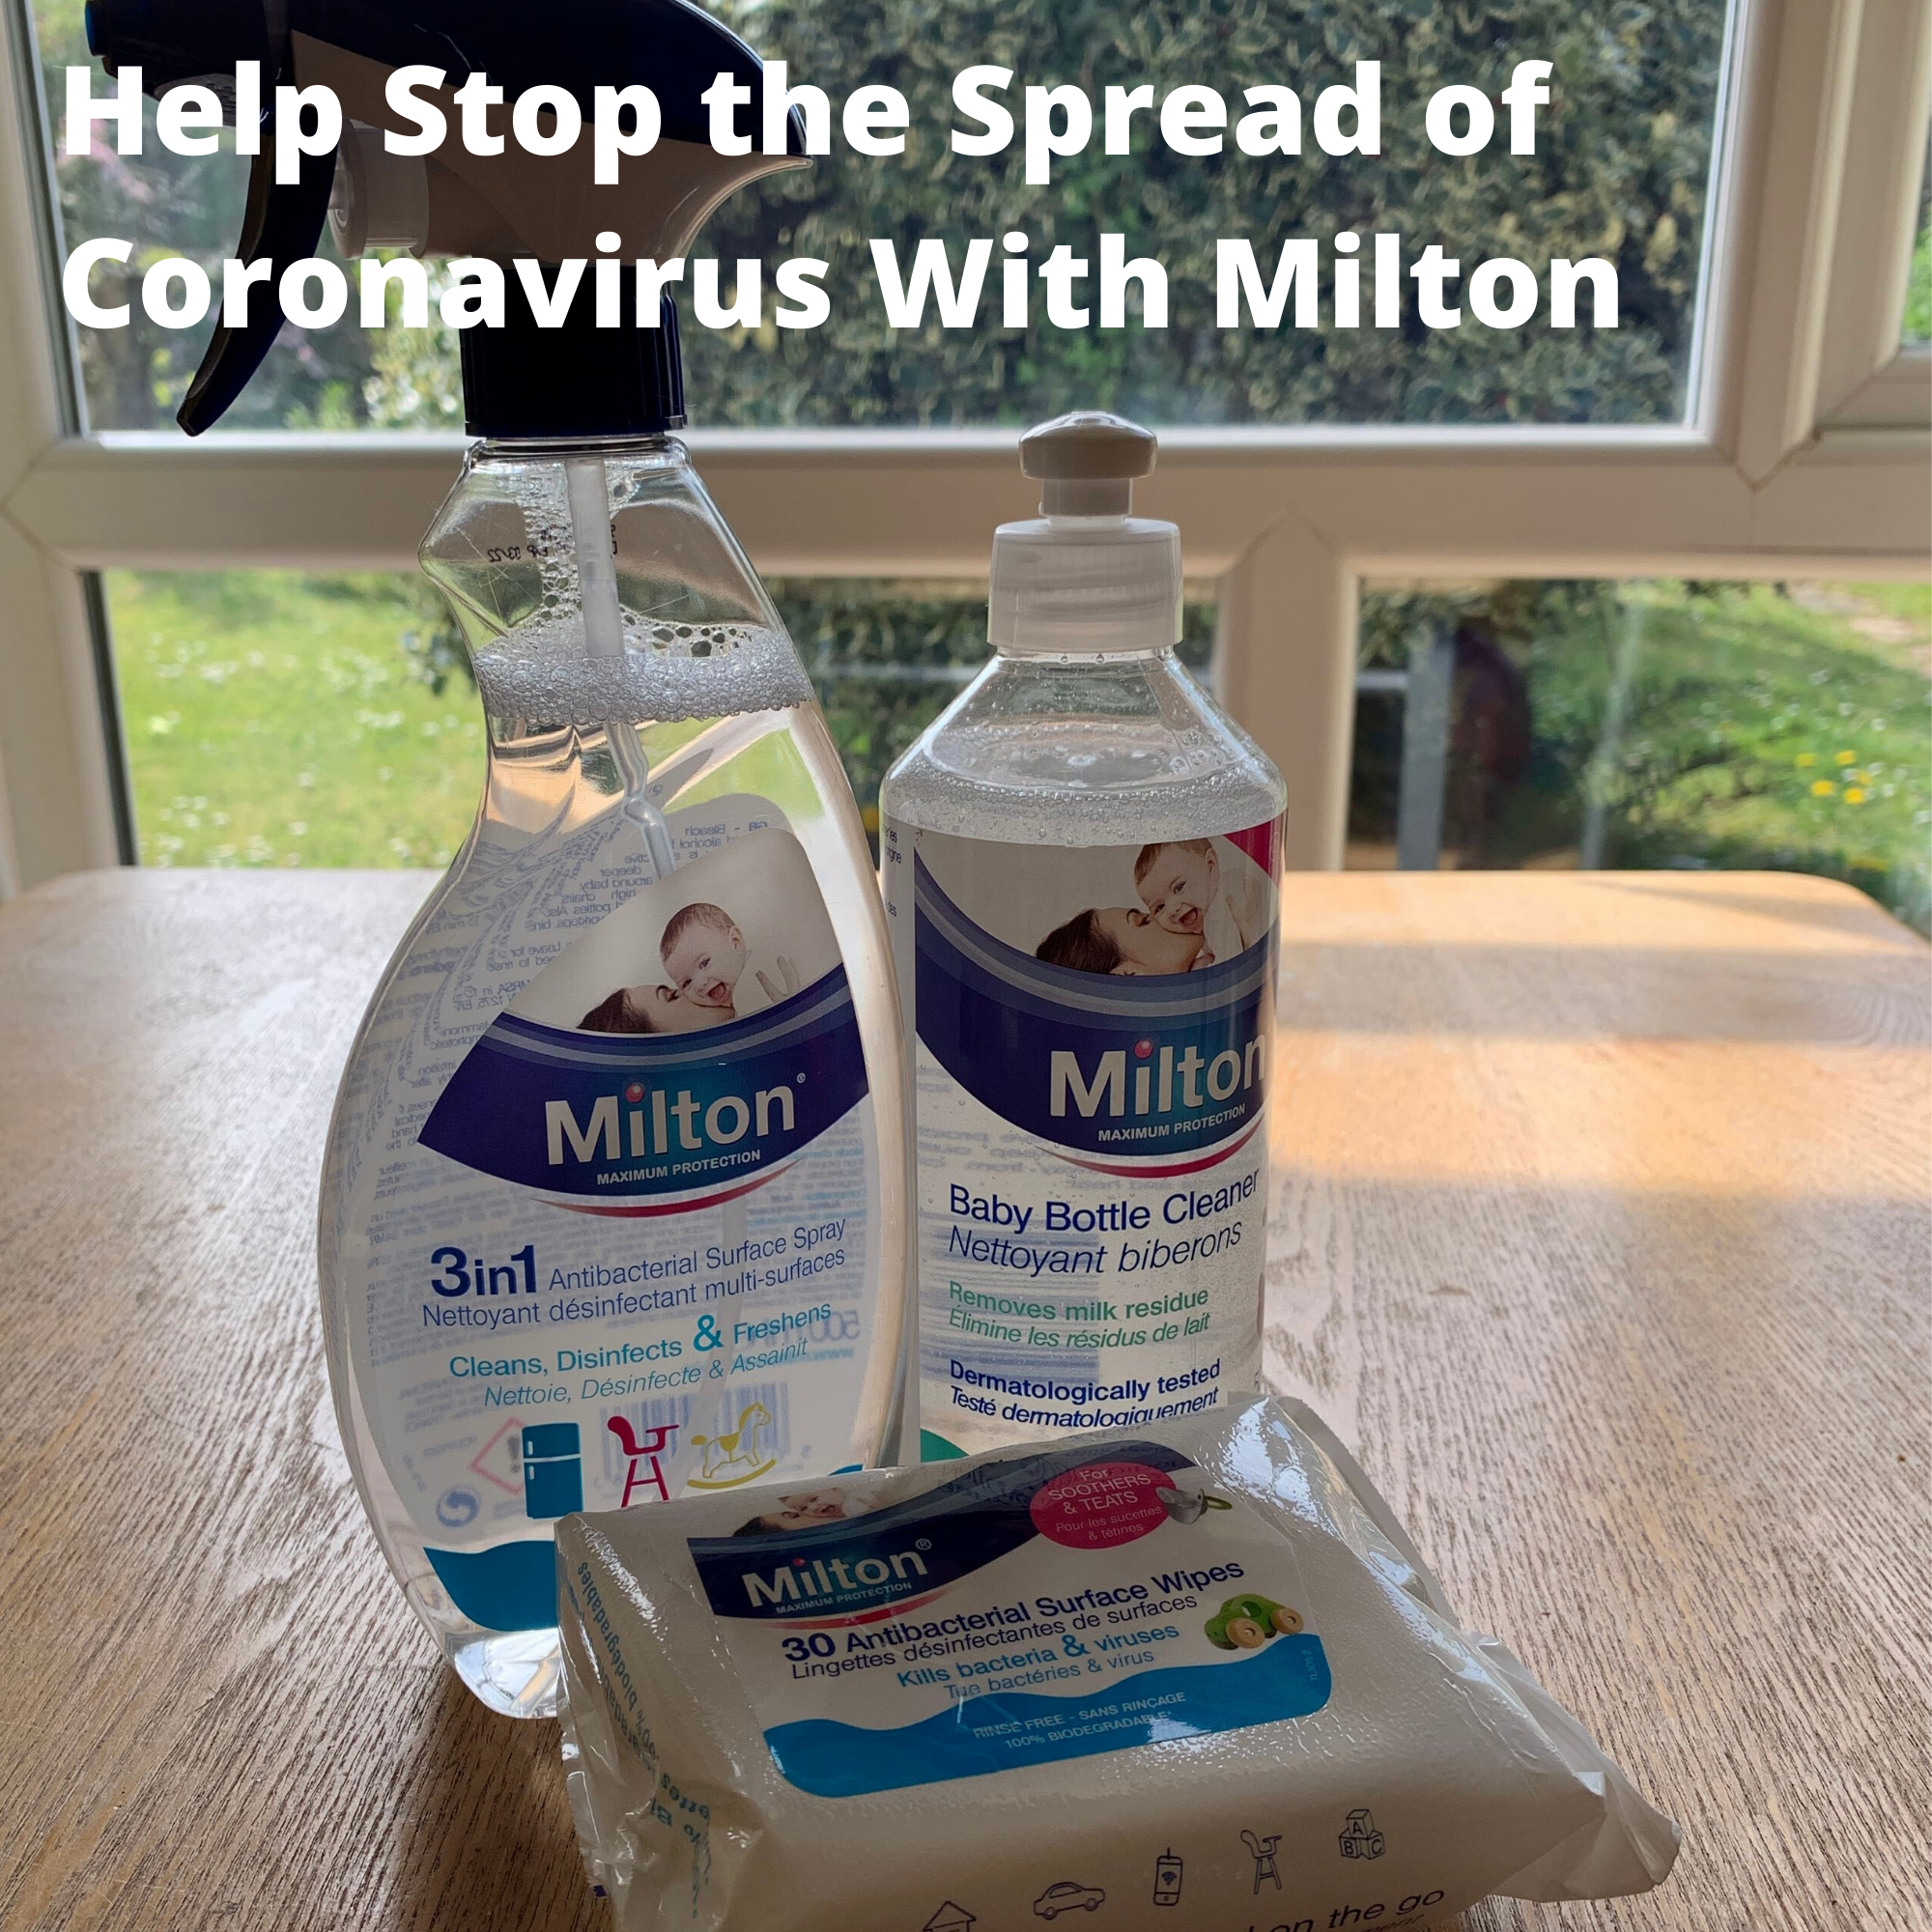 Help Stop the Spread of Coronavirus With Milton